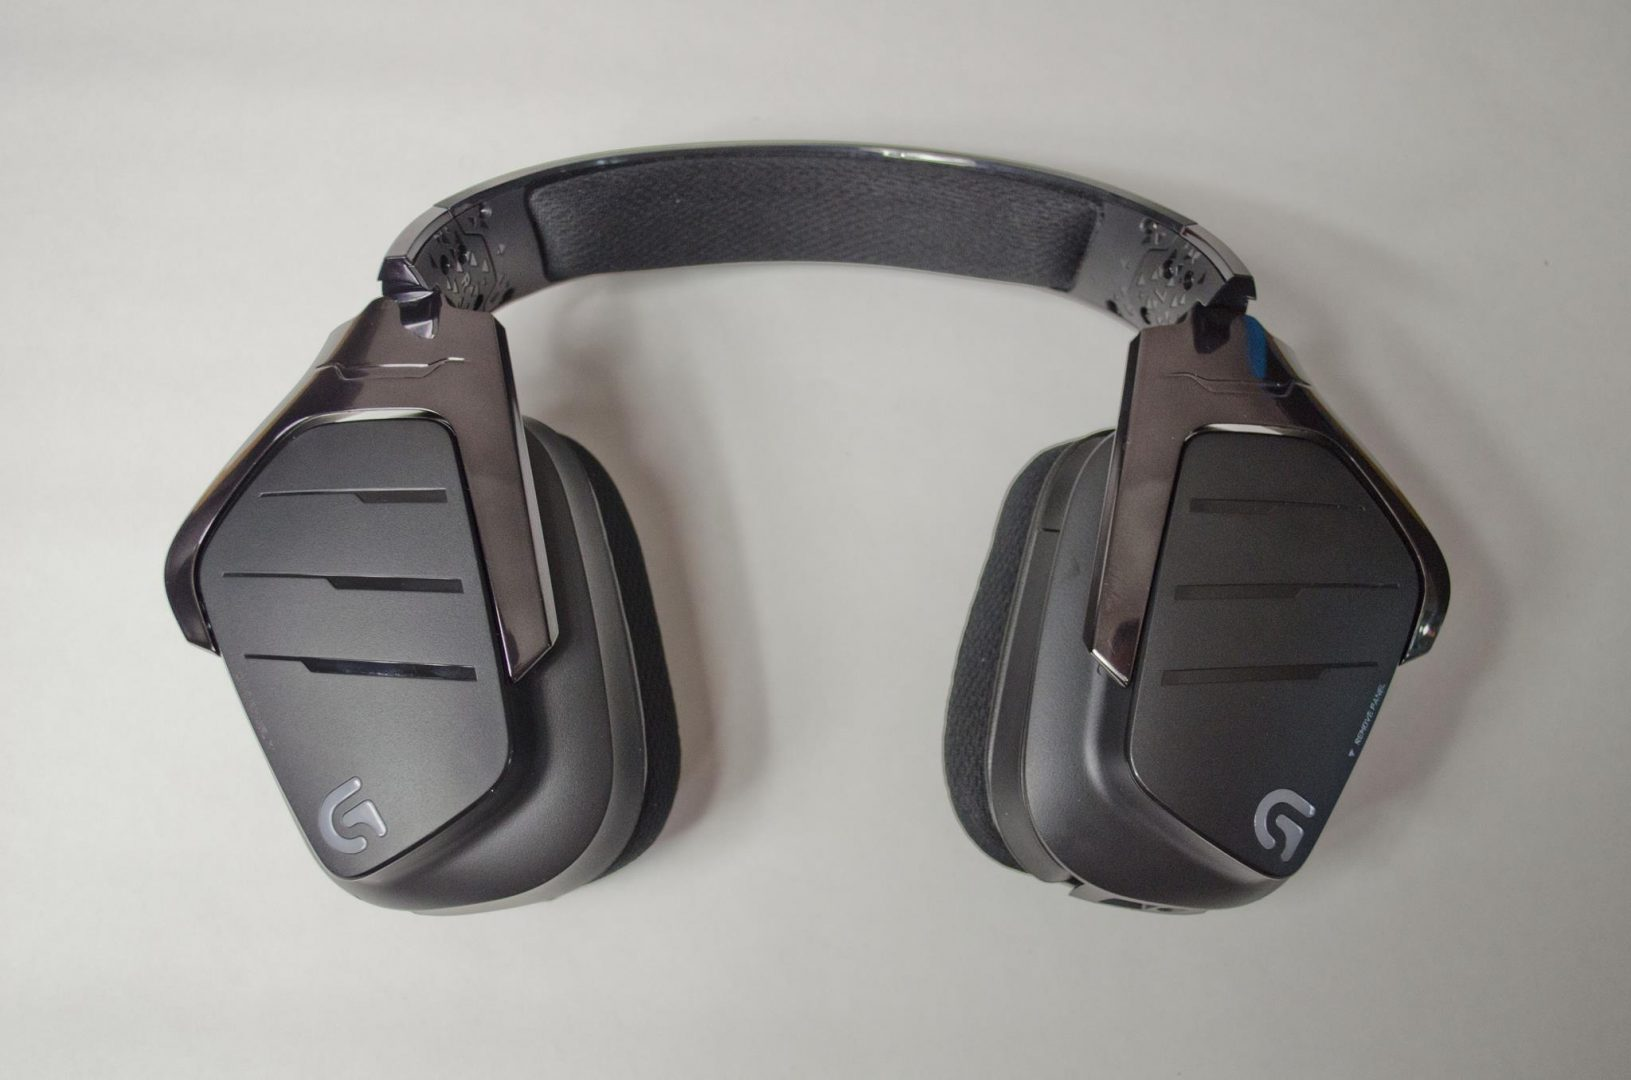 Logitech G633 artemis spectrum rgb 7.1 surround gaming headset review_2